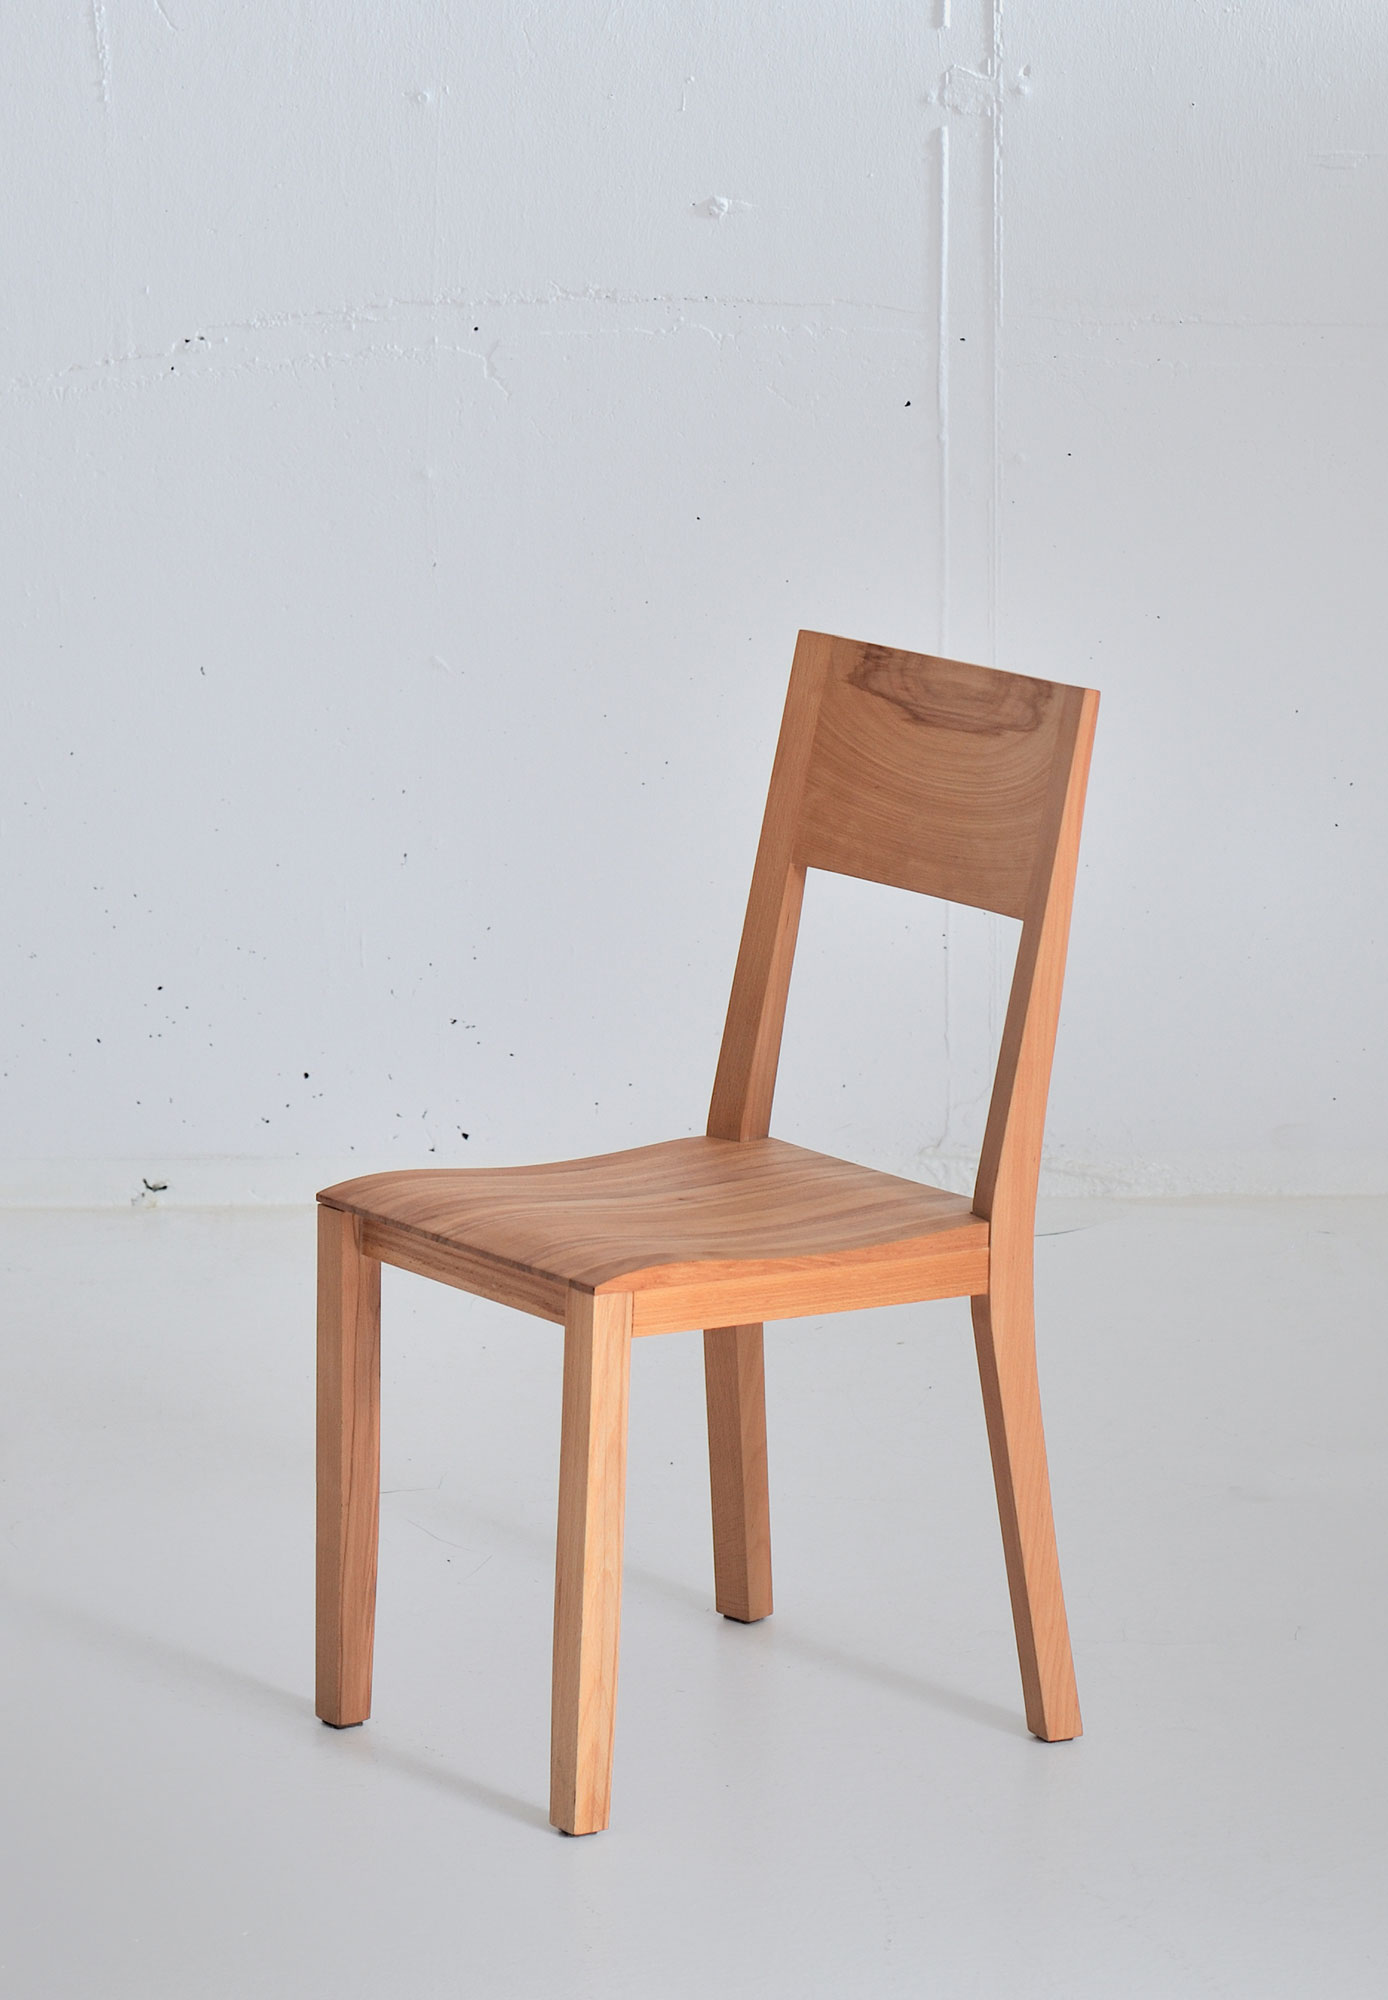 Dining Room Wooden Chair NOMI 3736 custom made in solid wood by vitamin design